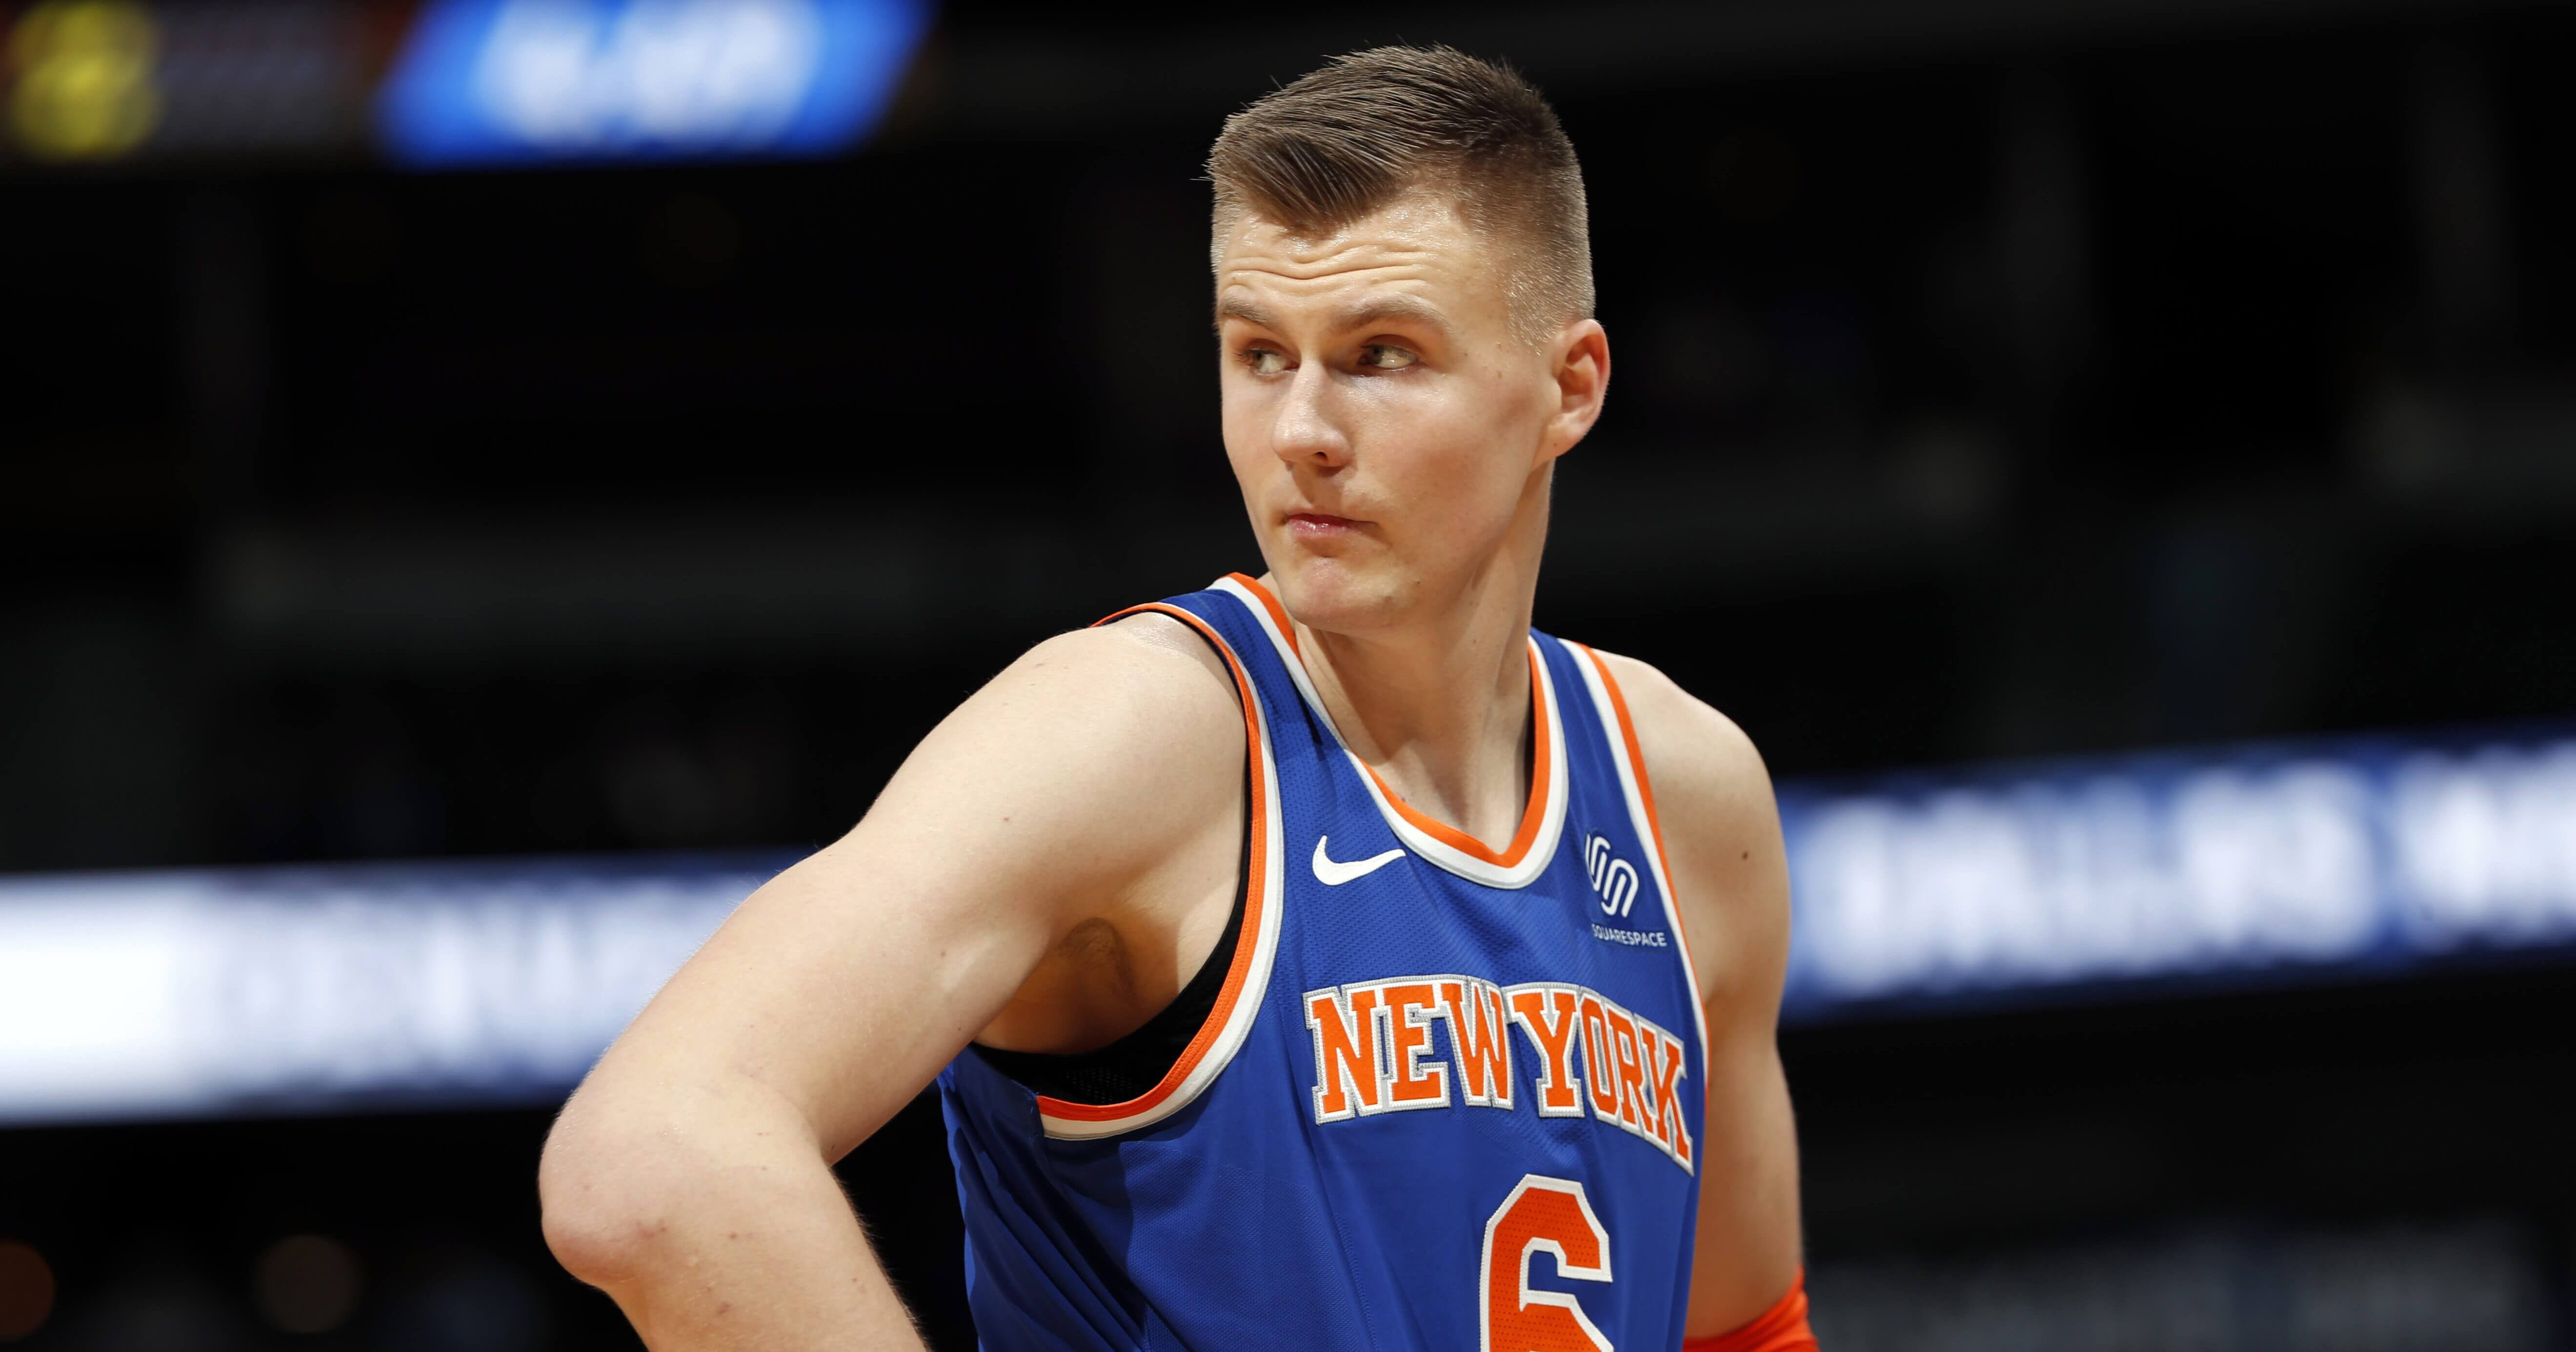 Kristaps Porzingis reacts after fouling out of the New York Knicks' game against the Denver Nuggets on Jan. 25.